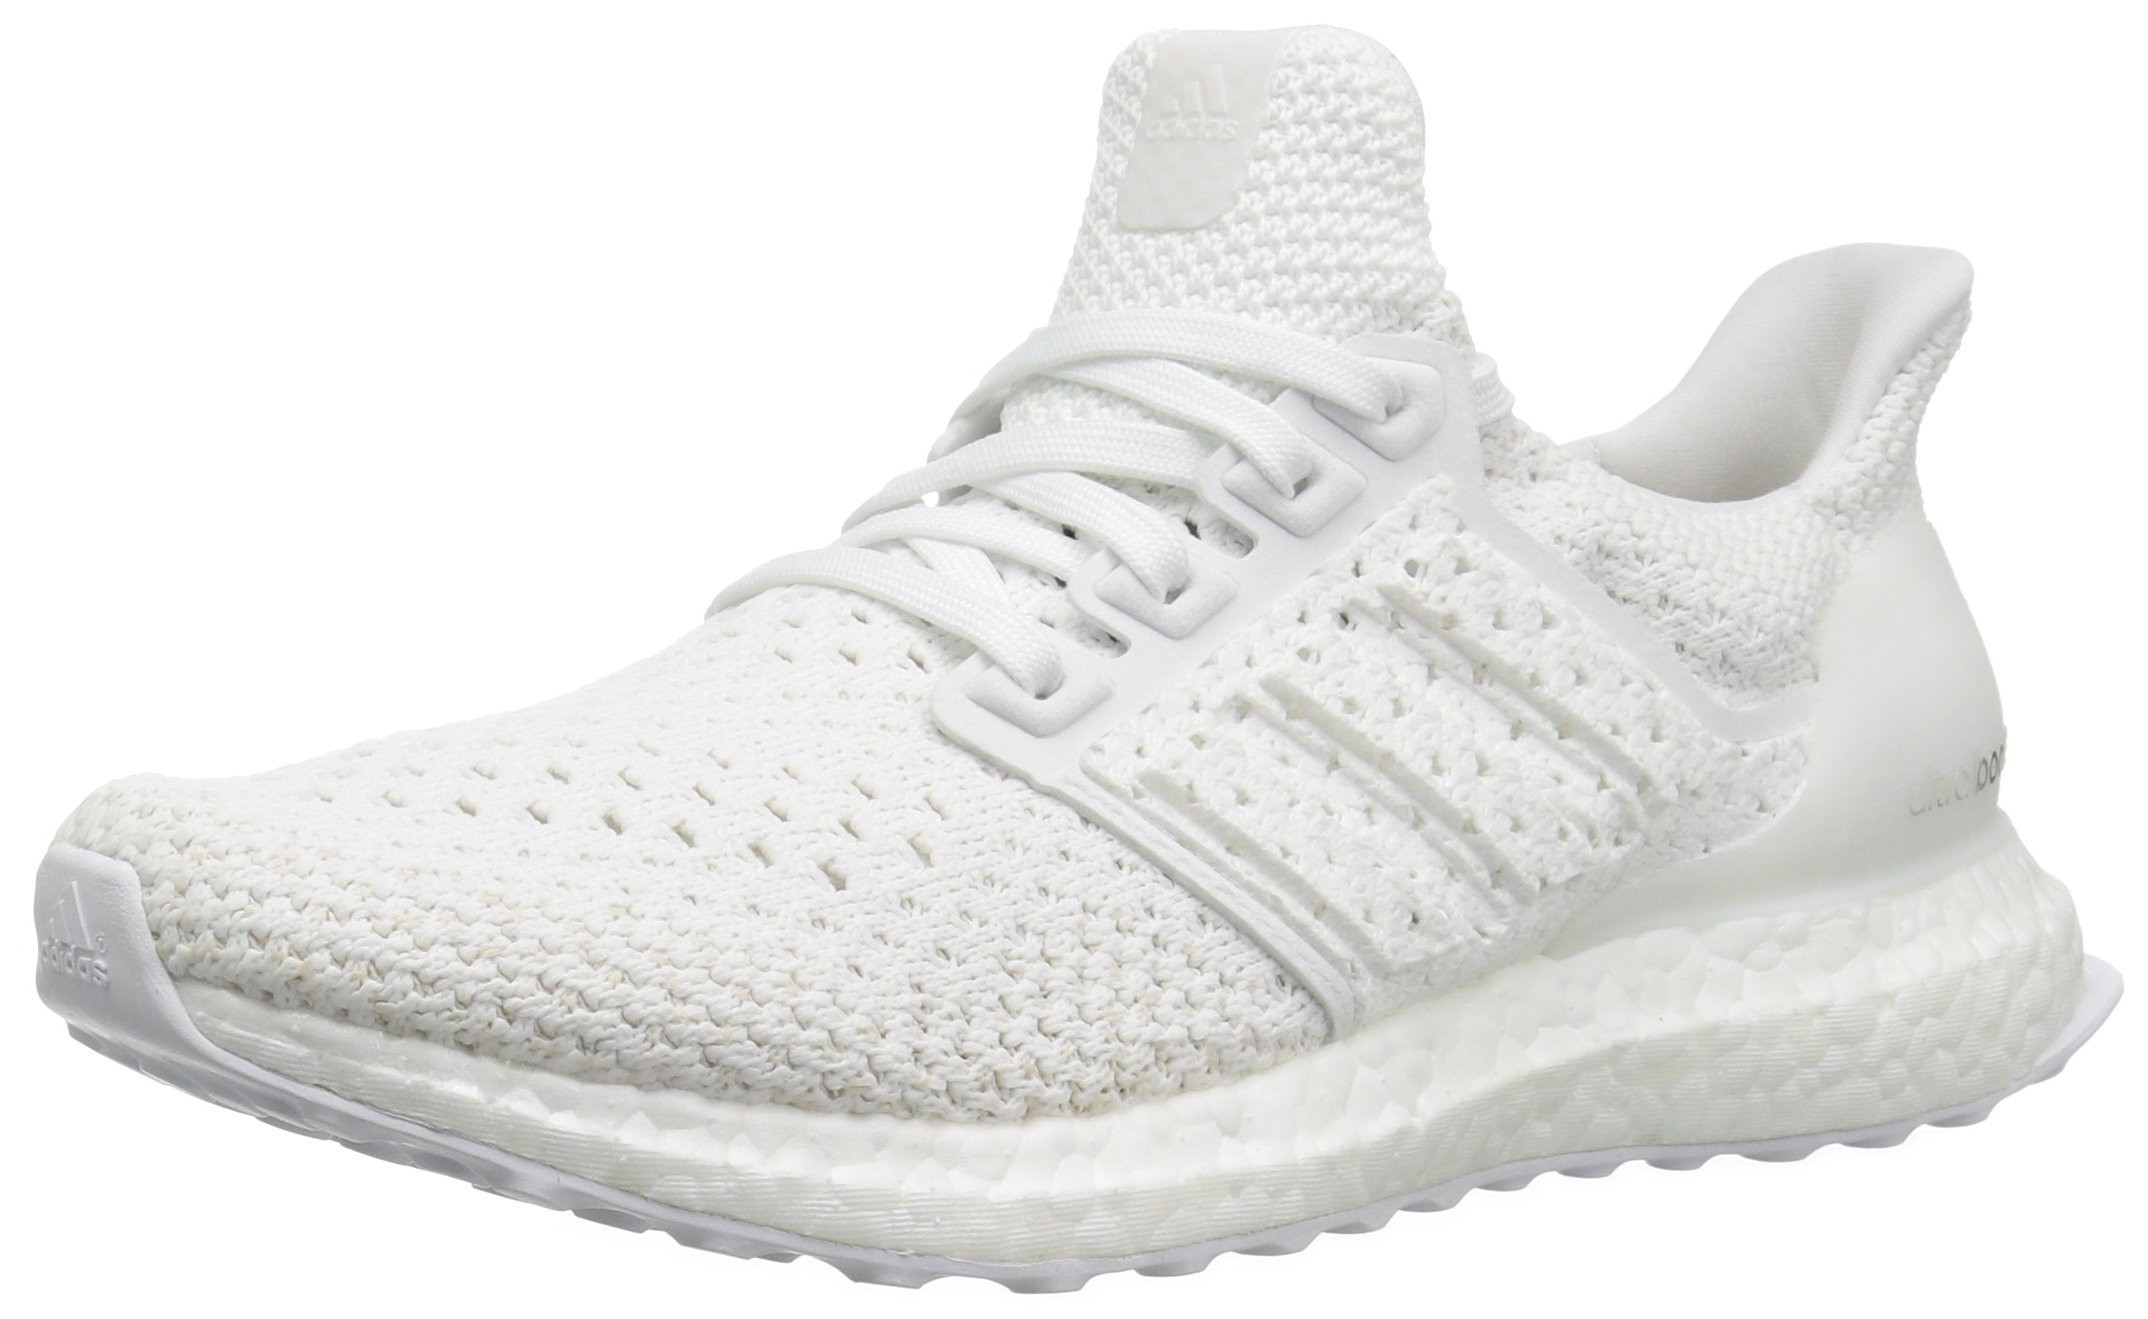 adidas Men's Ultraboost Clima, WhiteBrown, 9.5 M US